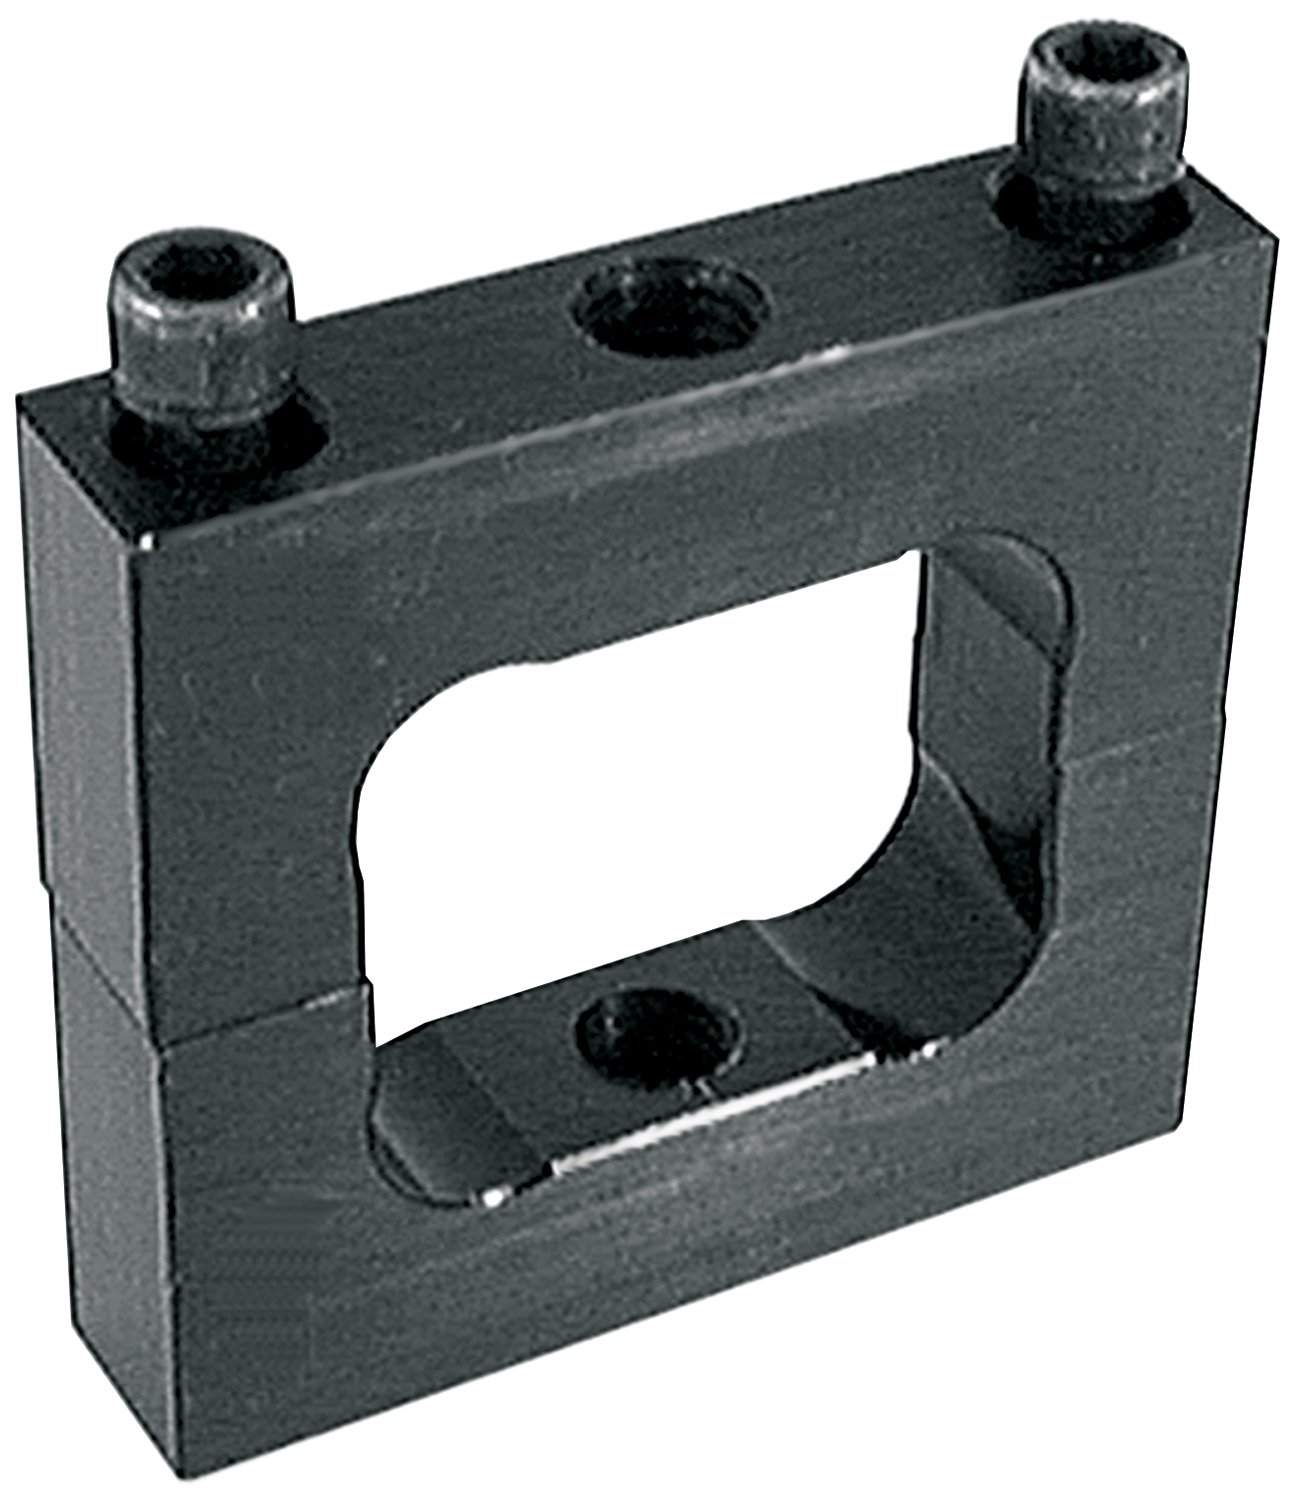 Allstar ALL14189 Black Anodized Aluminum Ballast Bracket for 2' x 2' Square Tubing